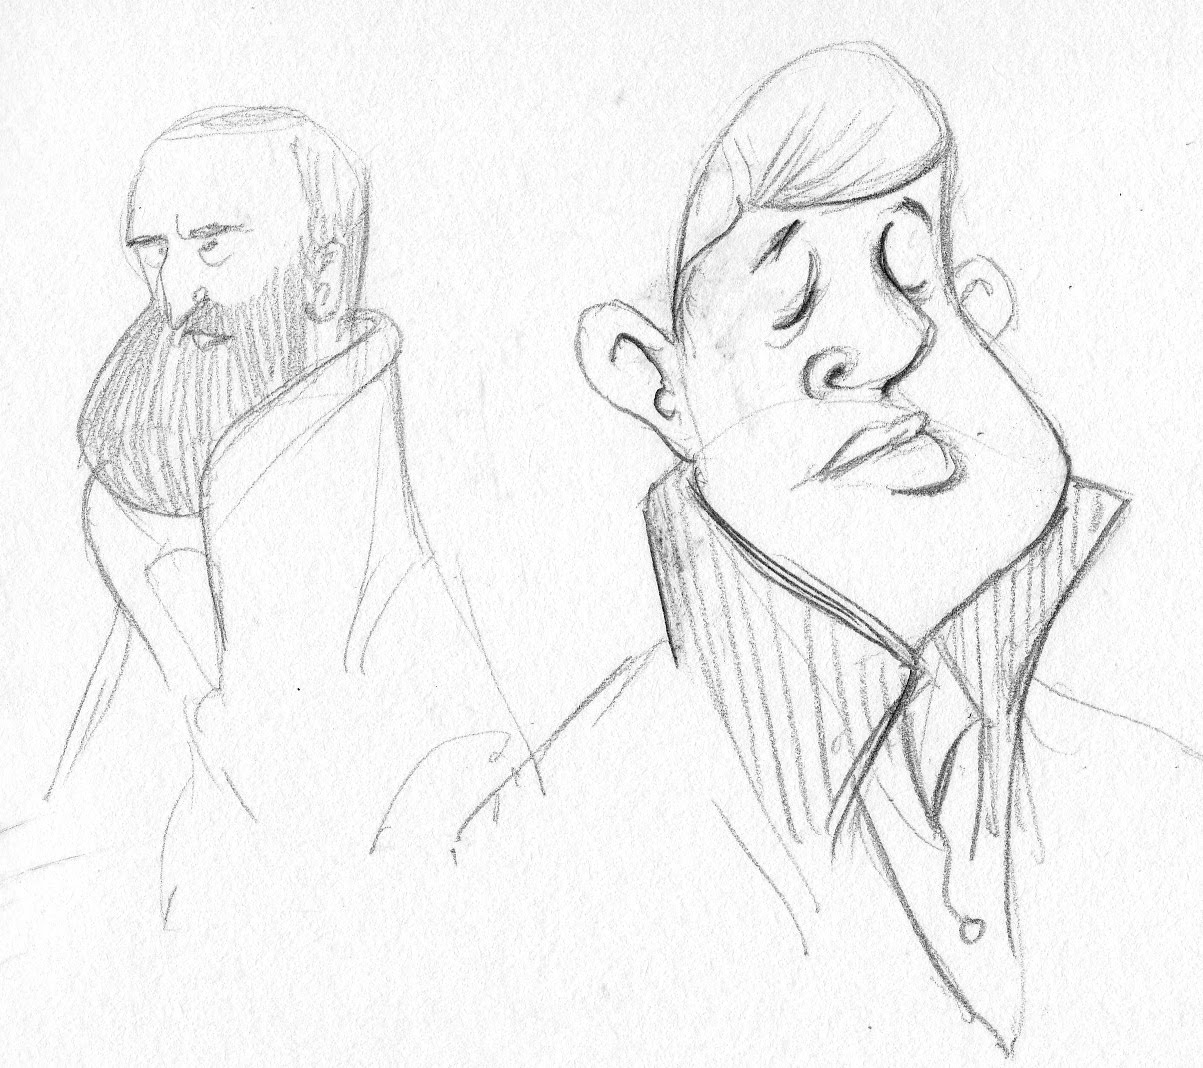 Stinky Wizzle Treats Some Fellow Commuters Sketched Today